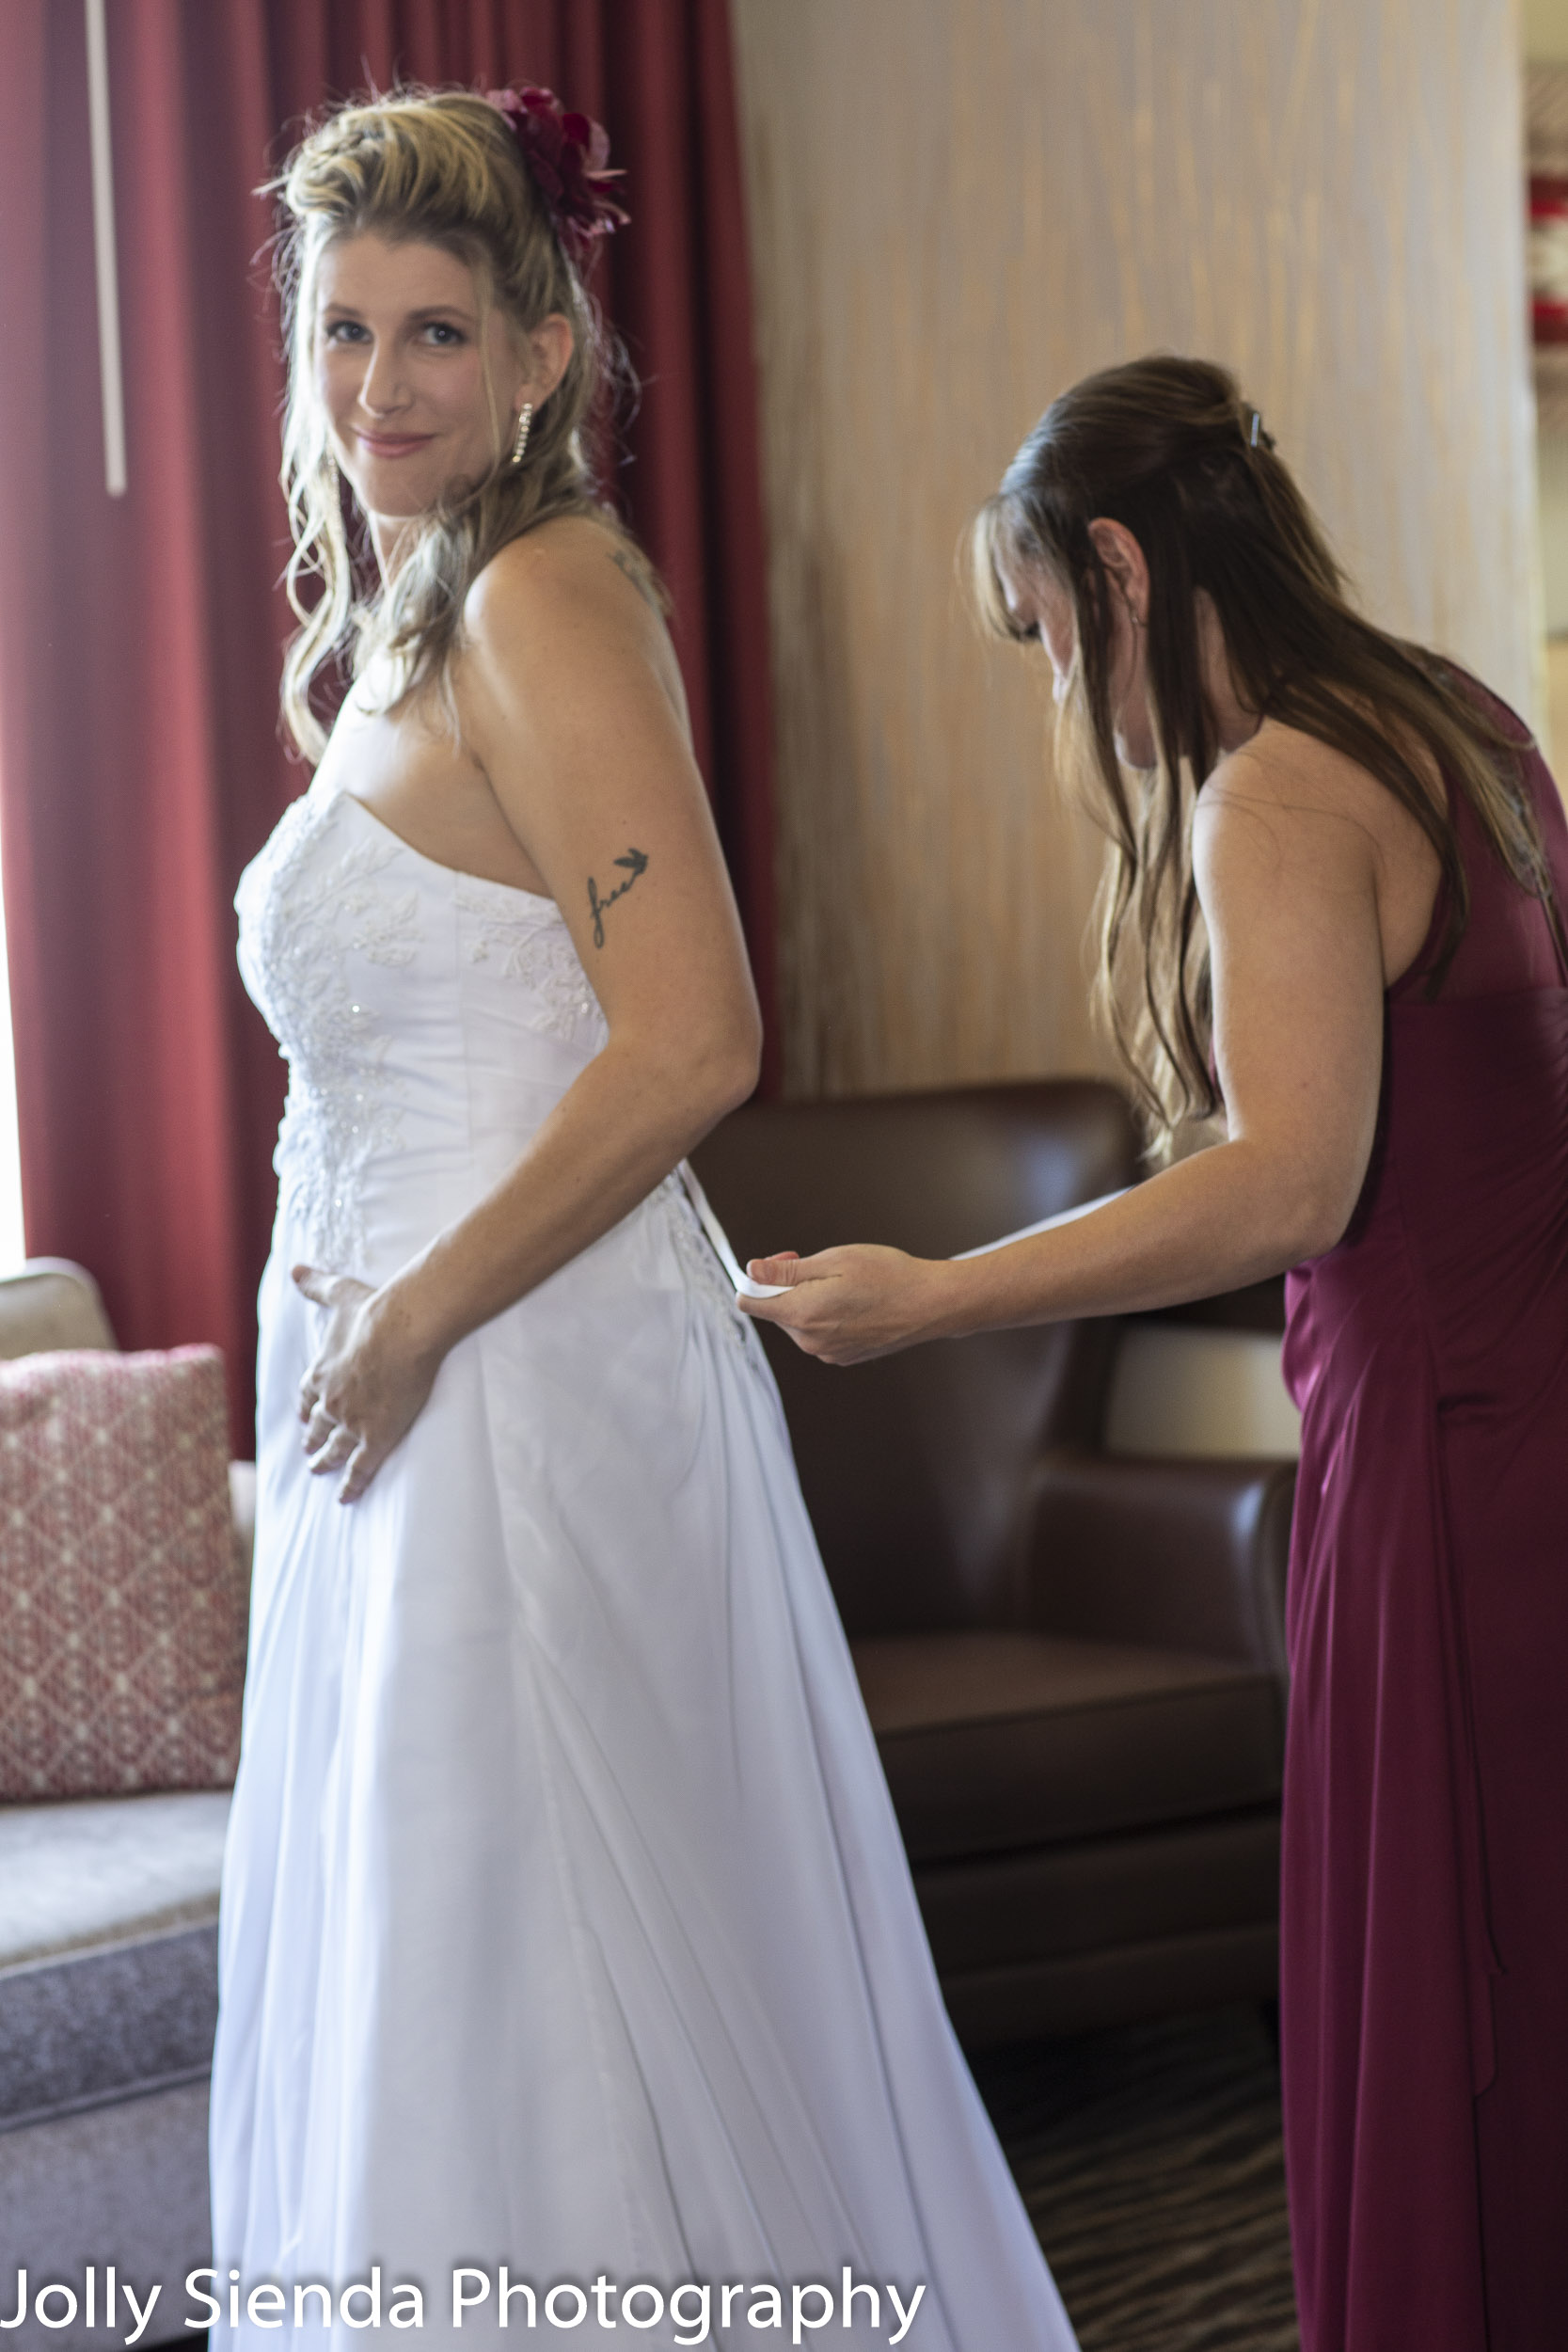 Michelle and Nicole Drake wedding photography